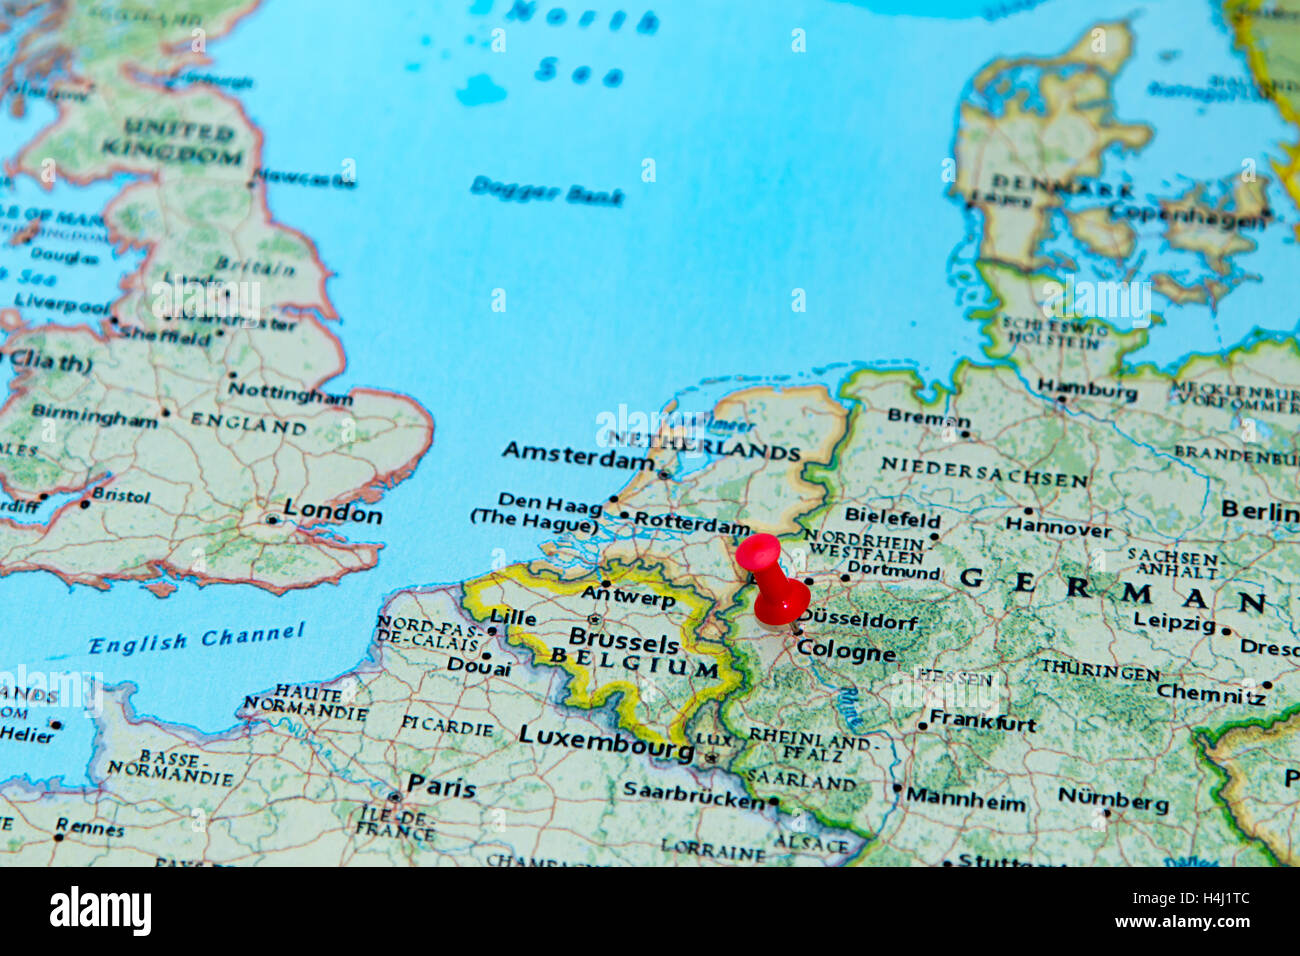 Cologne On Map Of Germany.Cologne Germany Pinned On A Map Of Europe Stock Photo 123327804